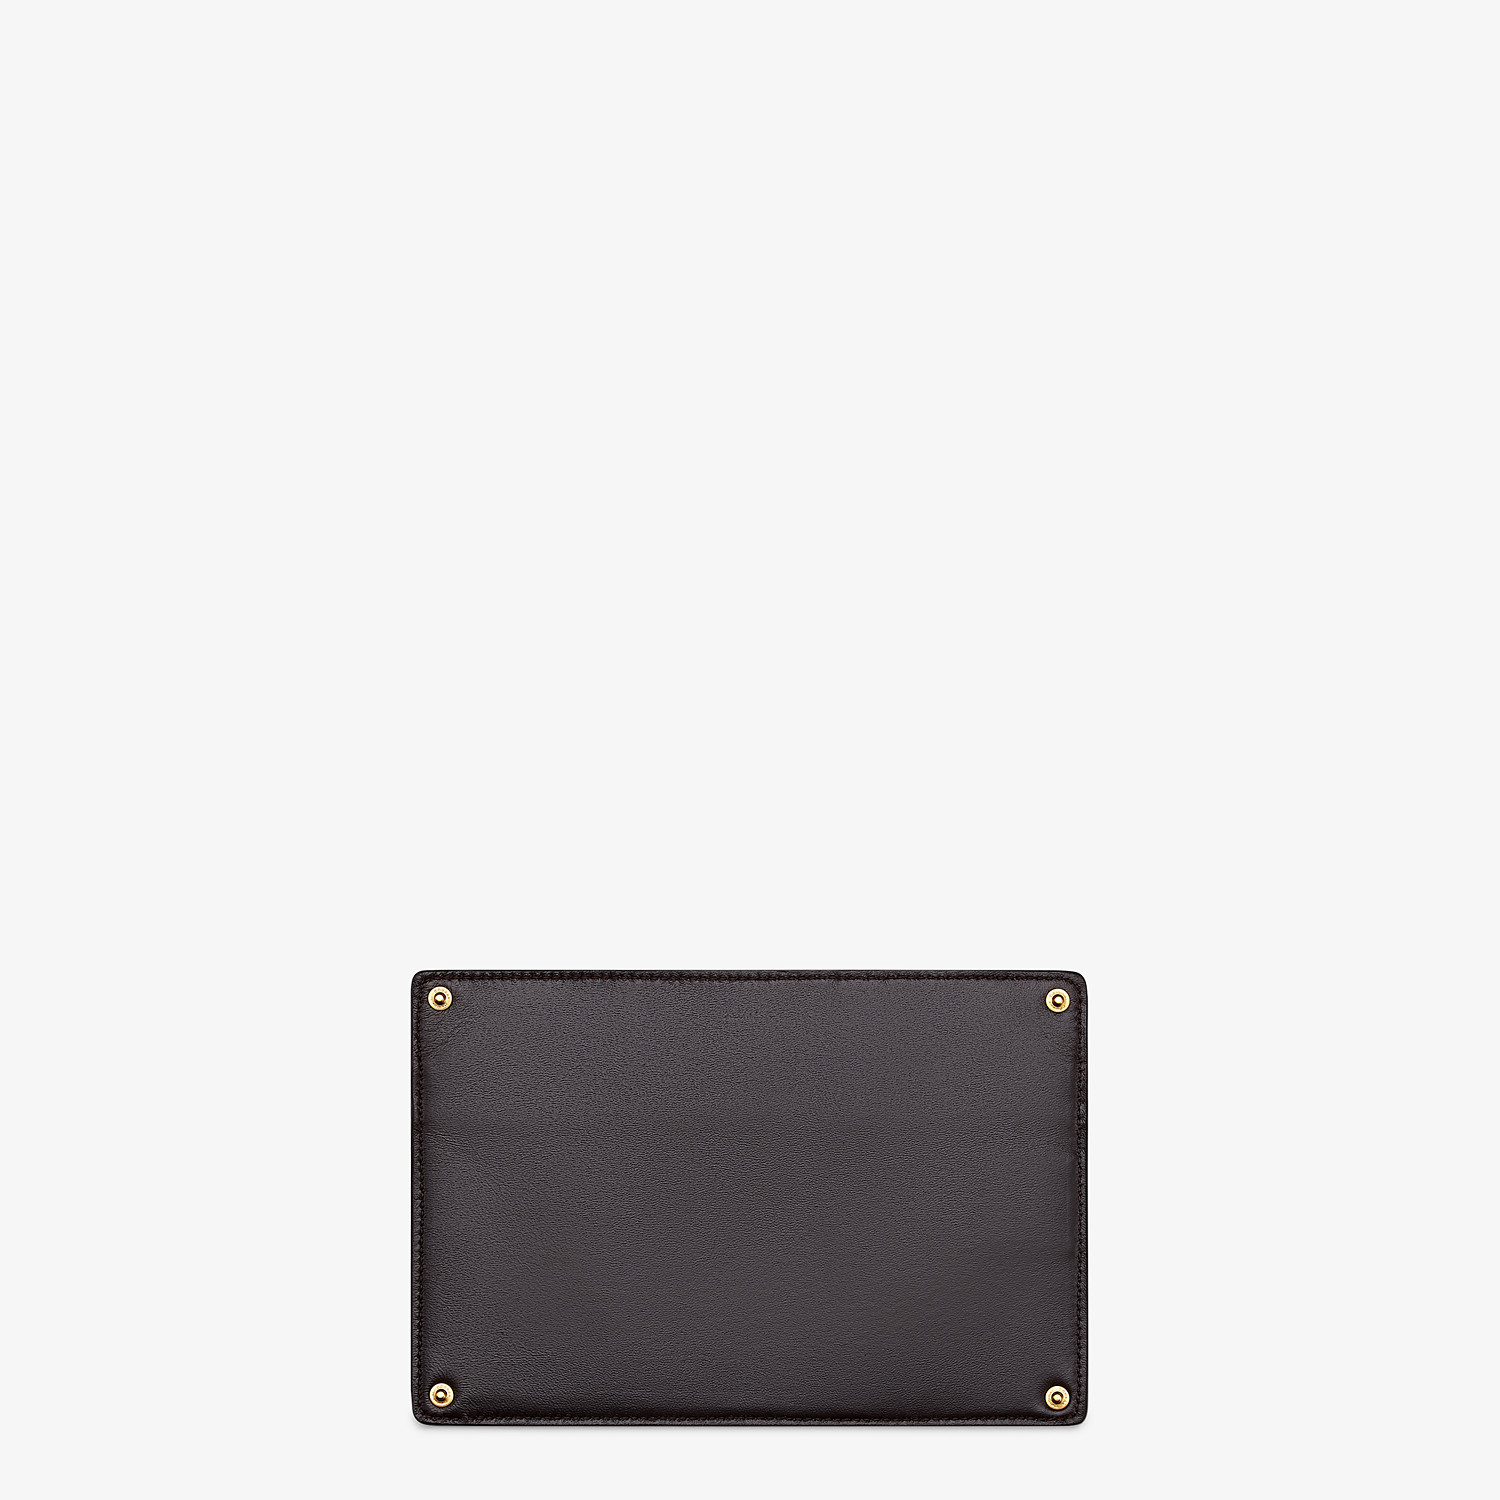 FENDI PEEKABOO ISEEU POCKET - Accessory pocket in natural elaphe - view 2 detail